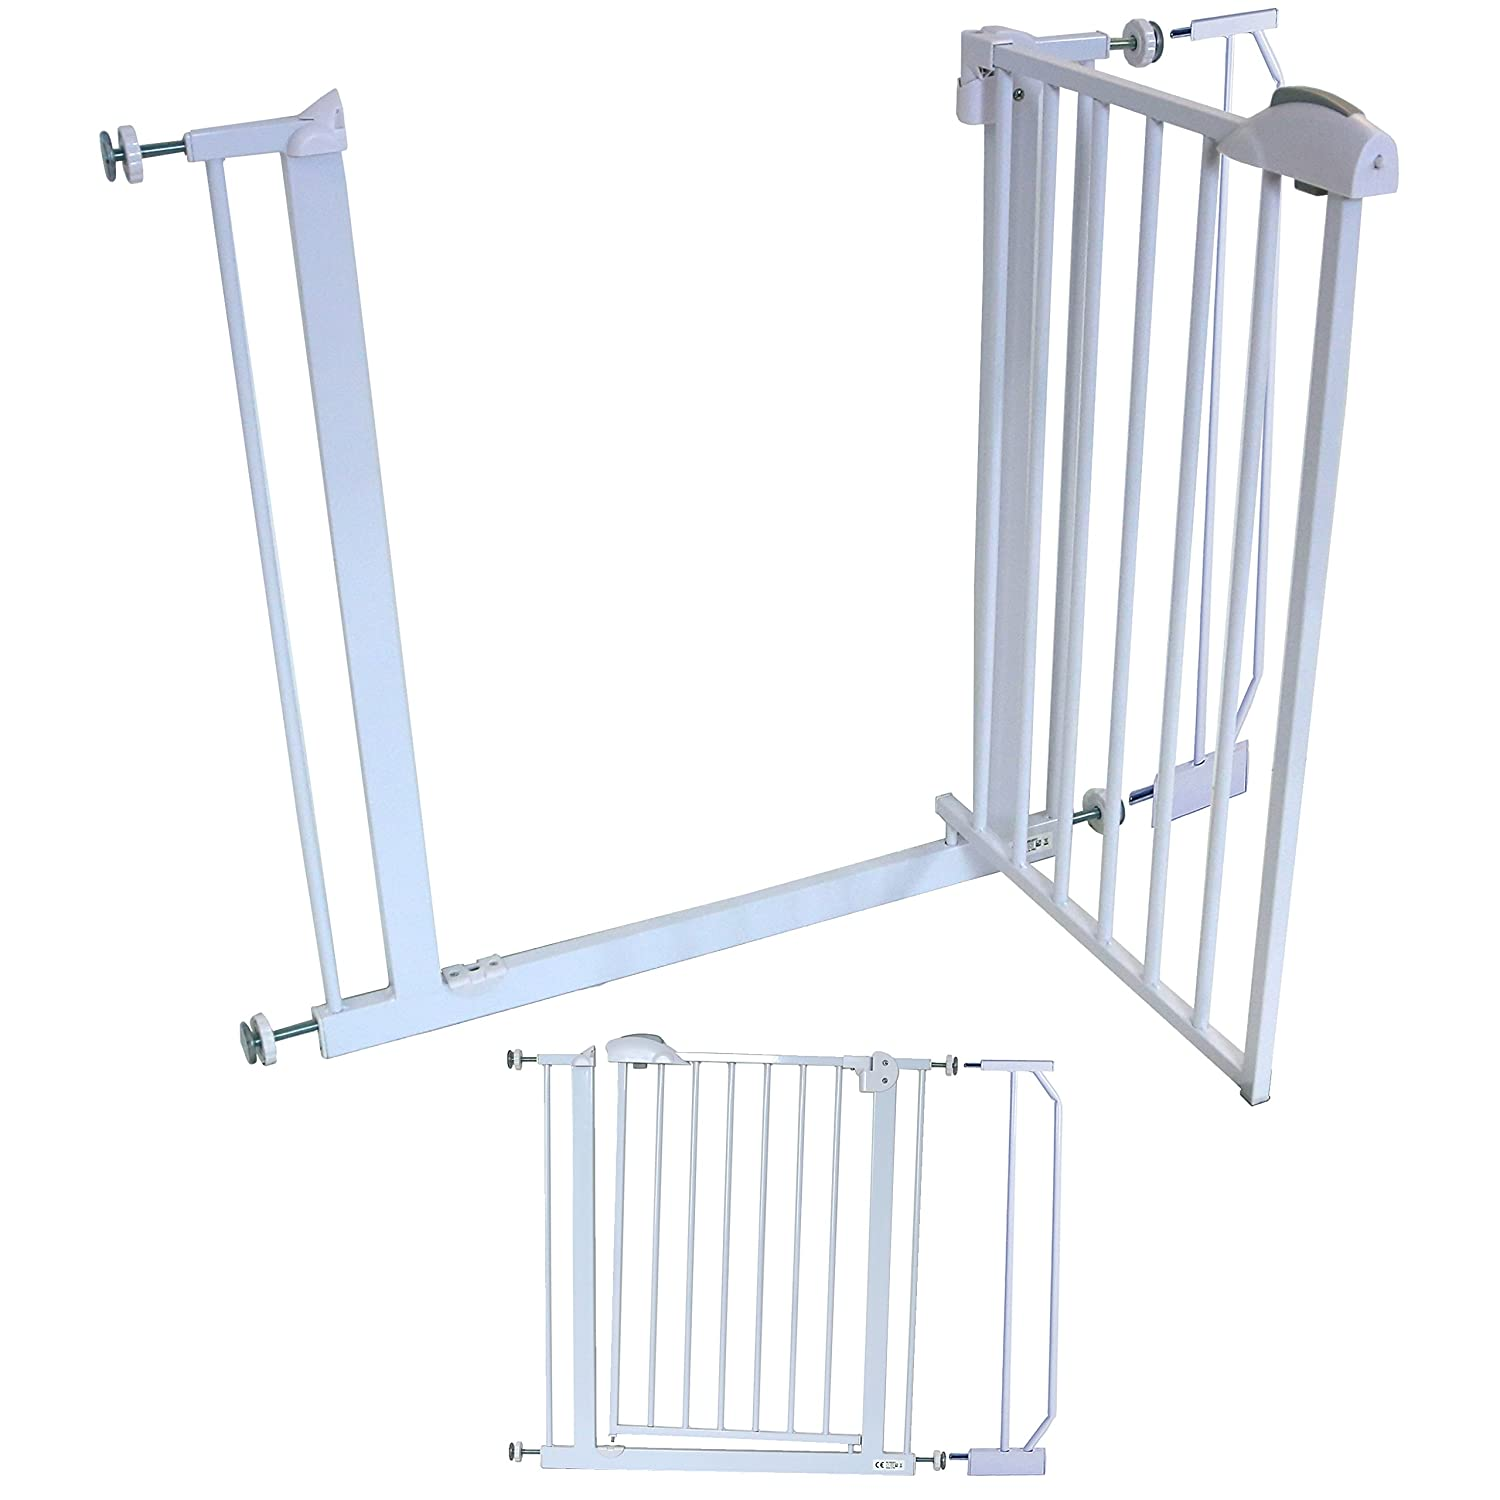 iSafe DeLuxe Stair Gate 90° STOP OPEN & Auto-Close StairGate (+ 10 CM Extension) AutoClose